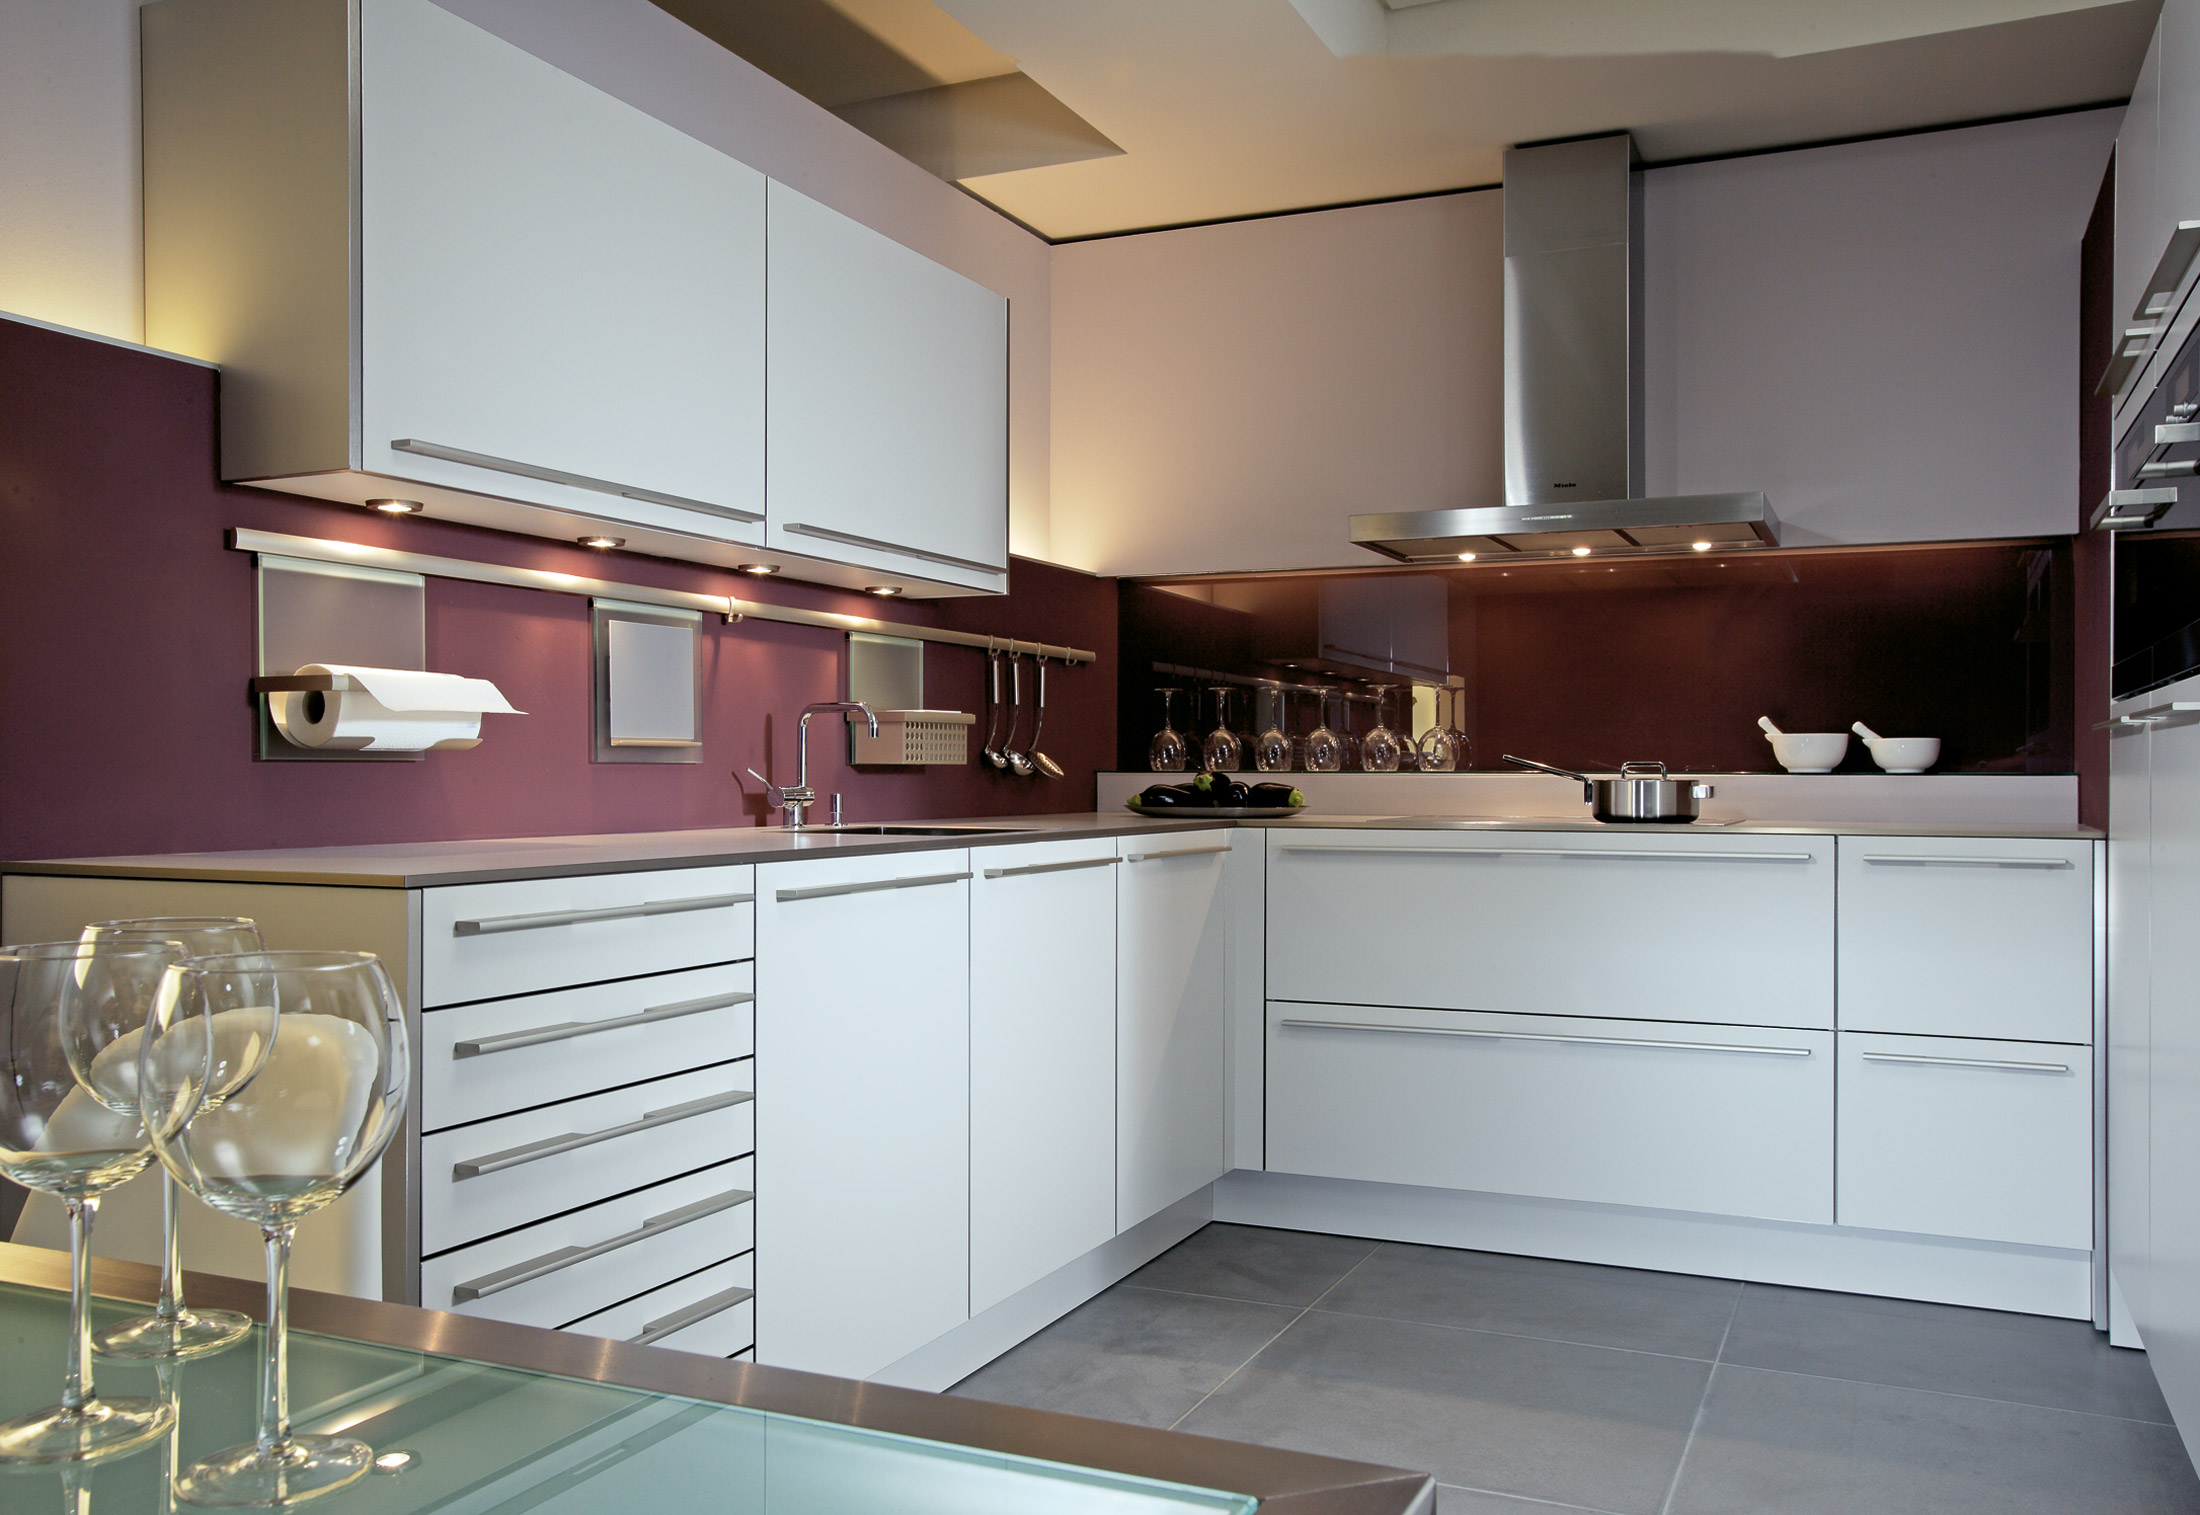 siematic kchen preise beautiful sc with siematic kchen preise awesome this amazing design. Black Bedroom Furniture Sets. Home Design Ideas